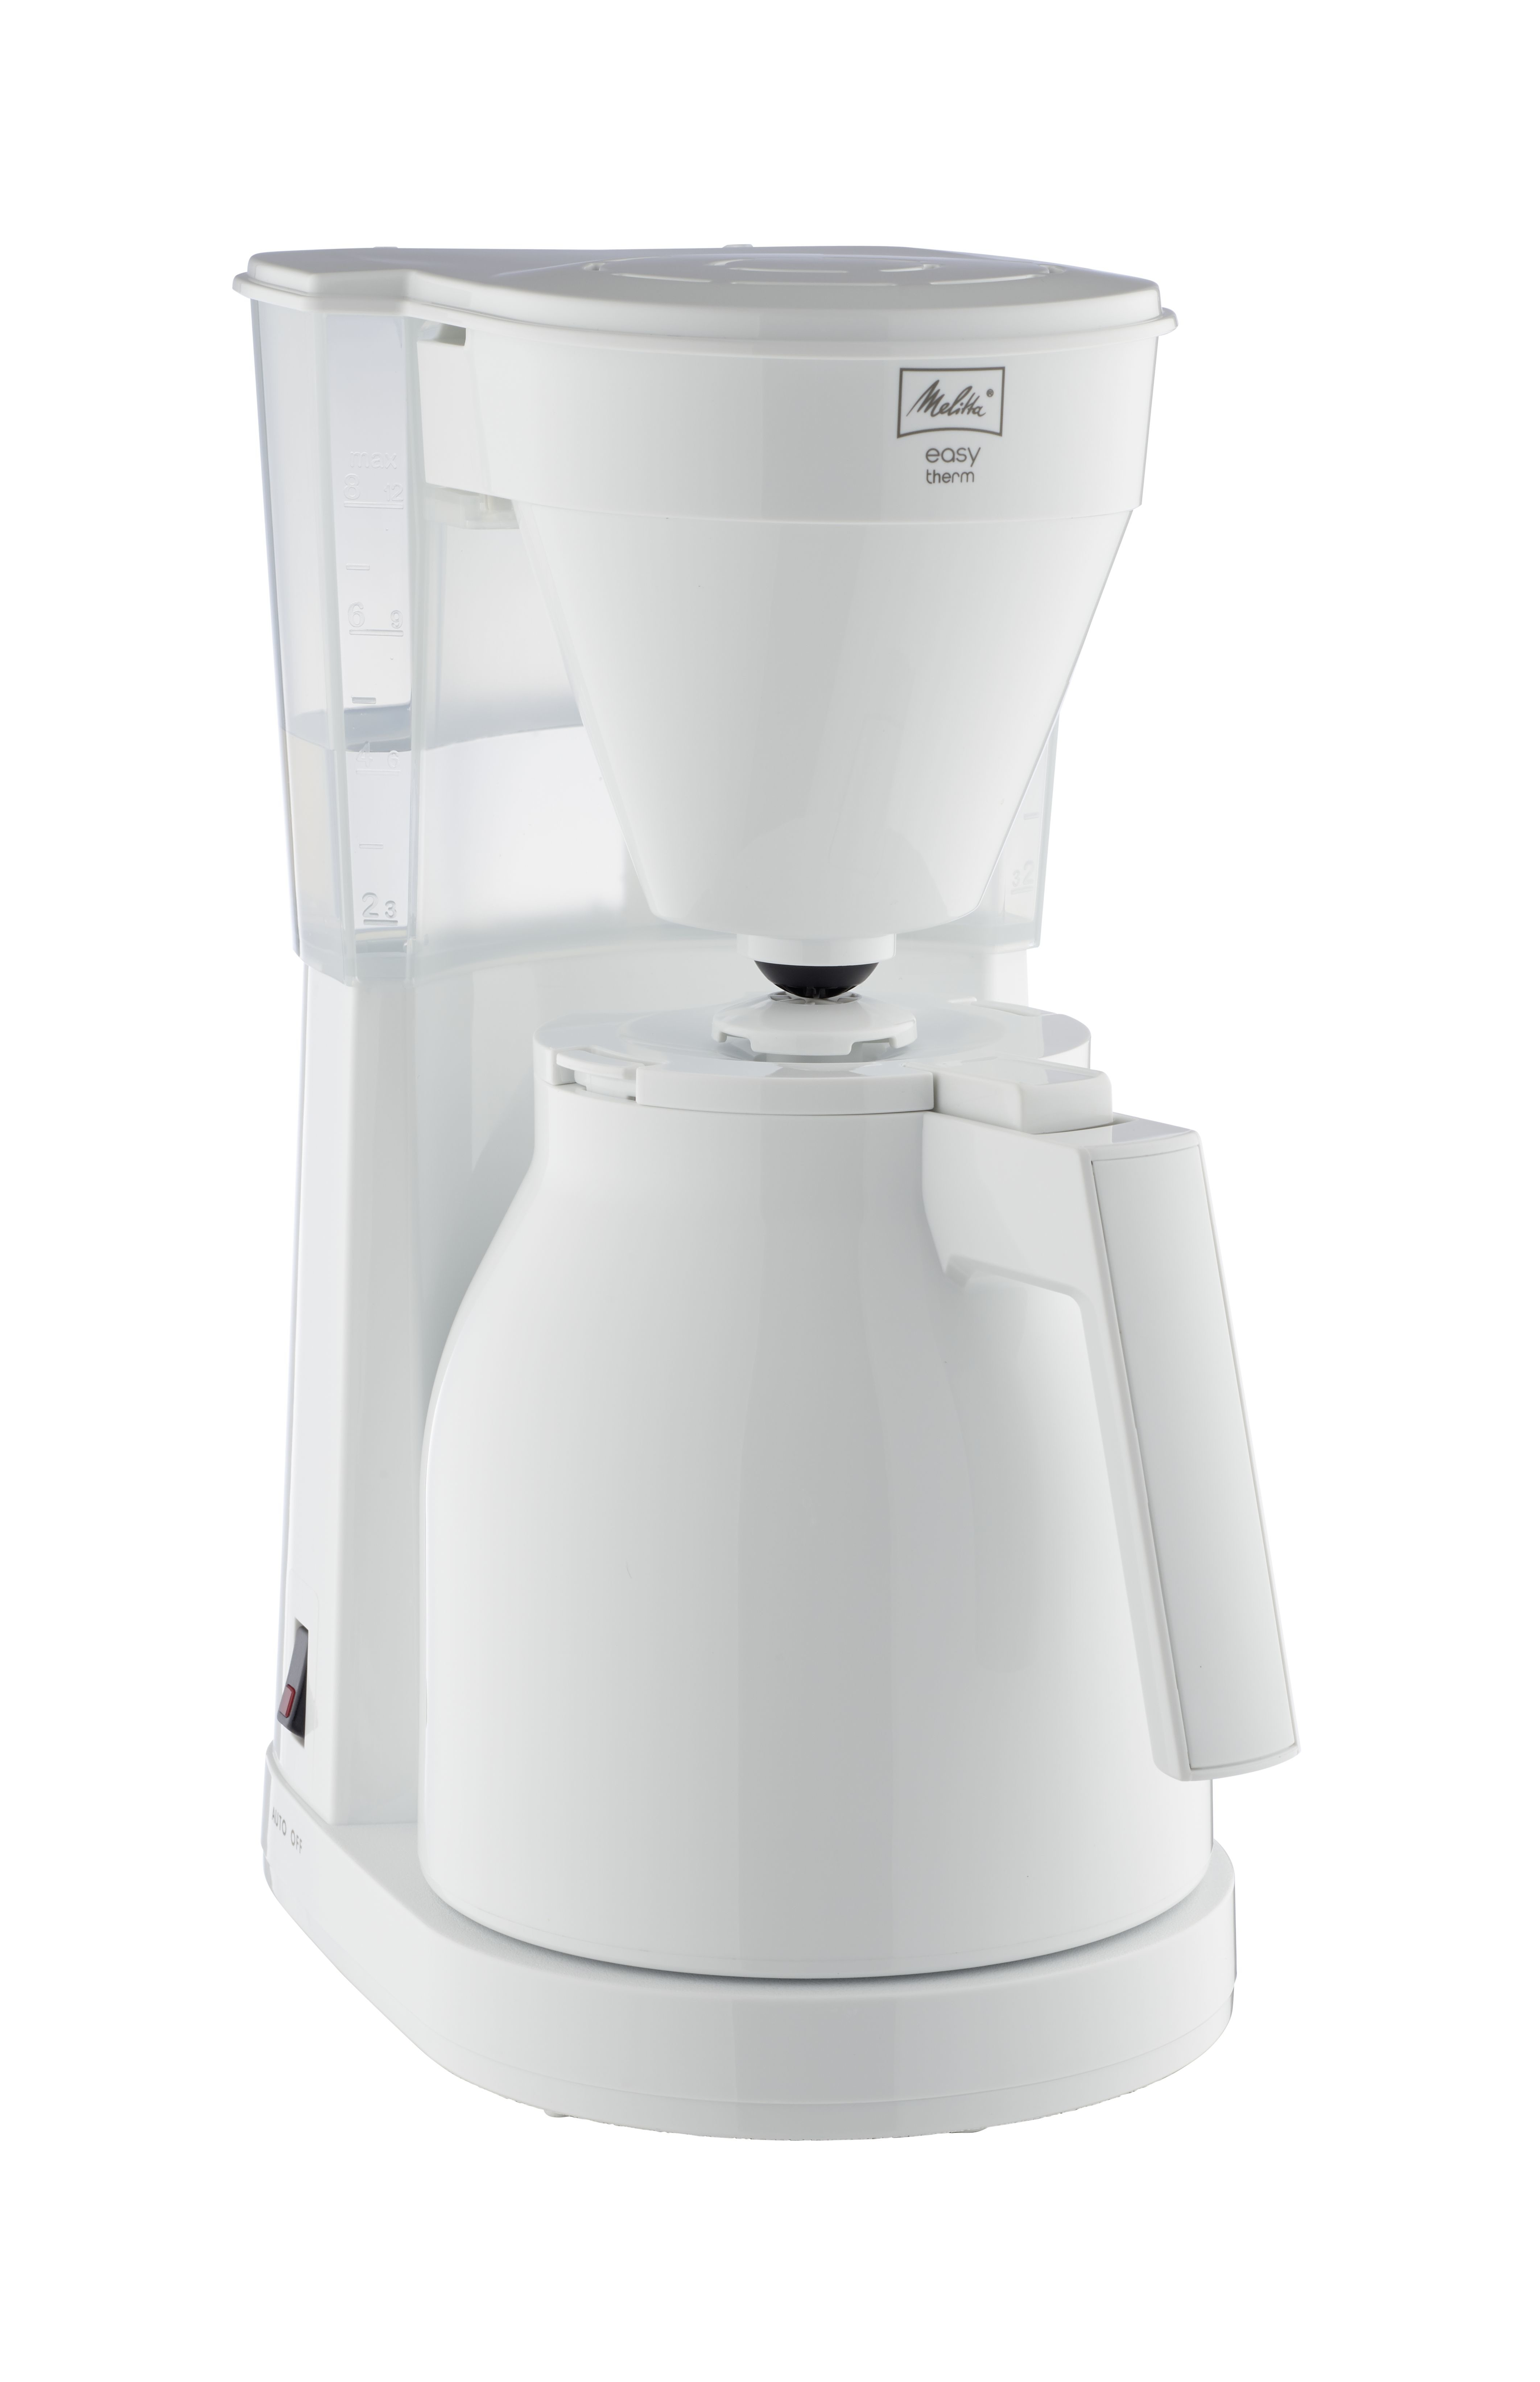 Melitta koffiefilter apparaat EASY II THERM 1023-05 wit